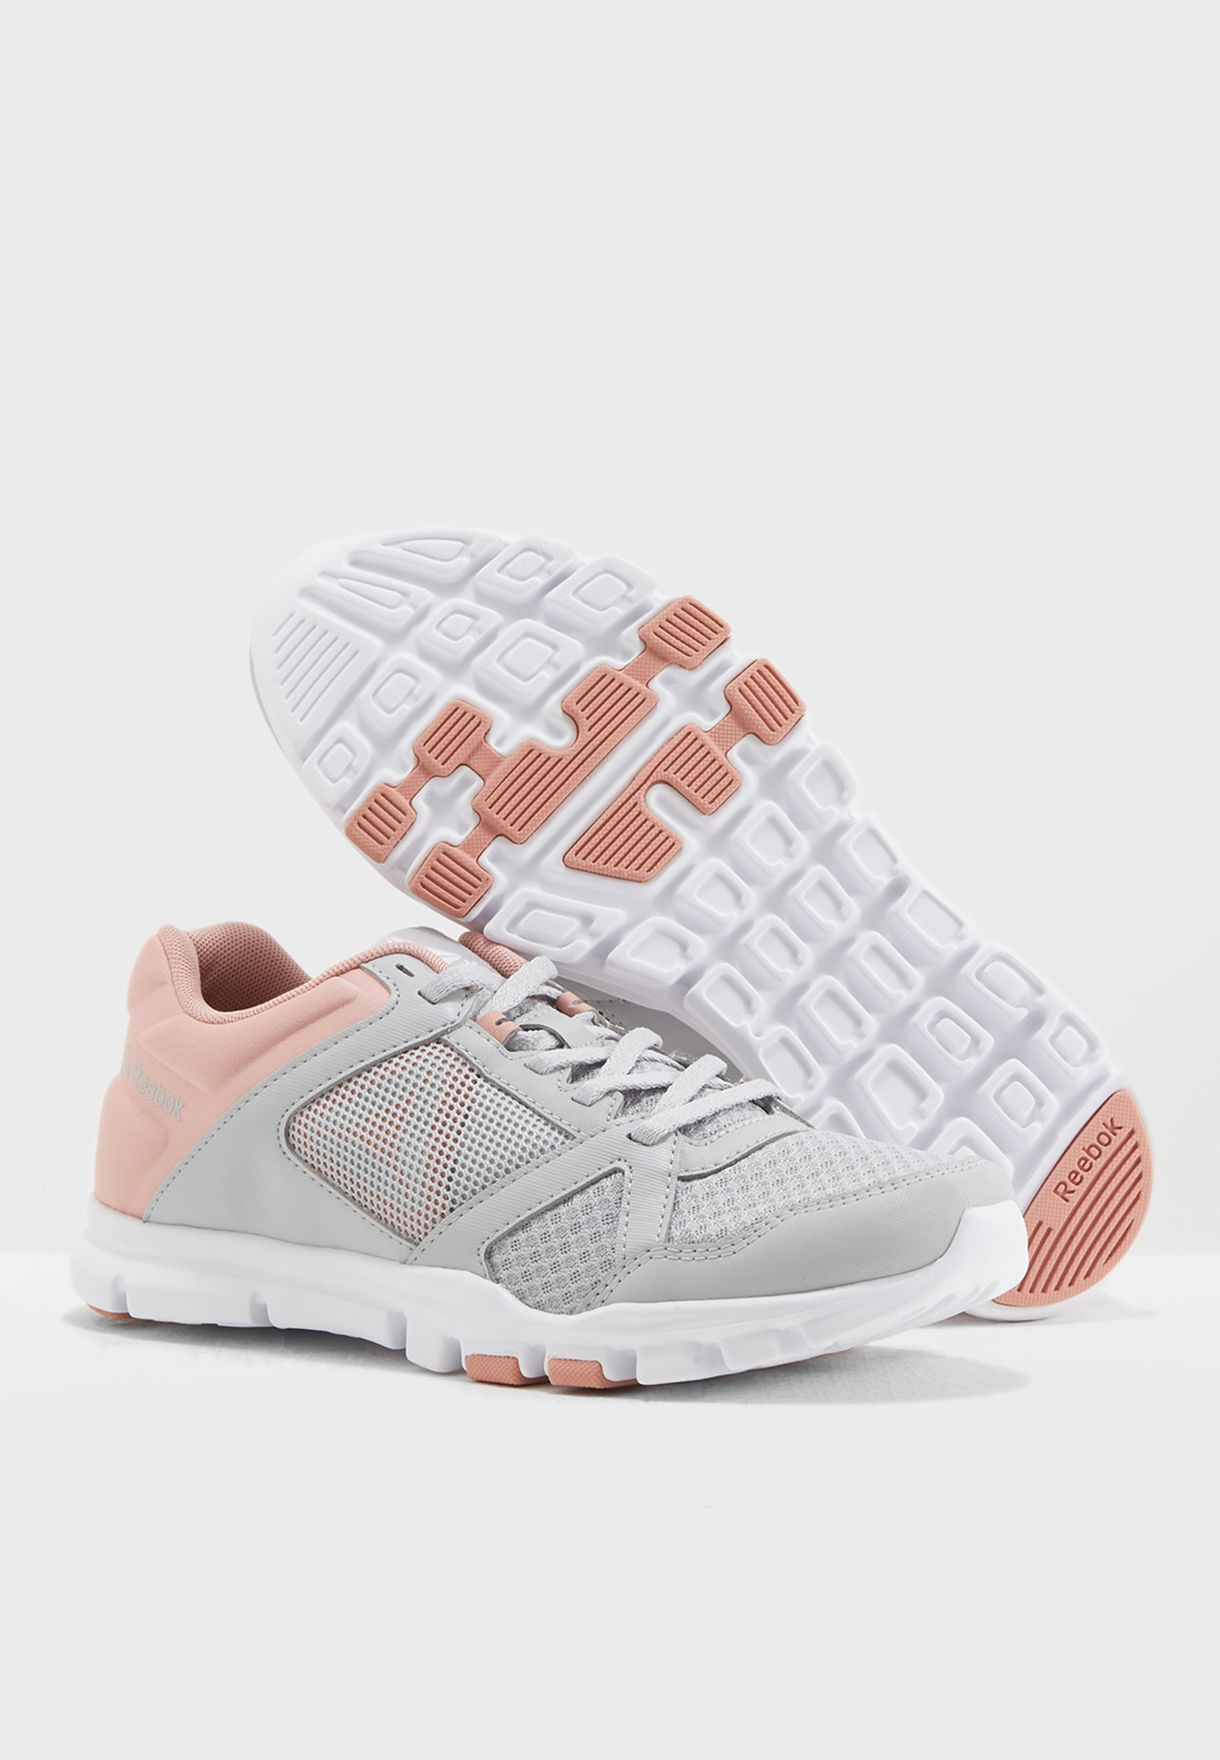 Shop Reebok grey Yourflex Trainette 10 MT CN1251 for Women in ... 56ebff082